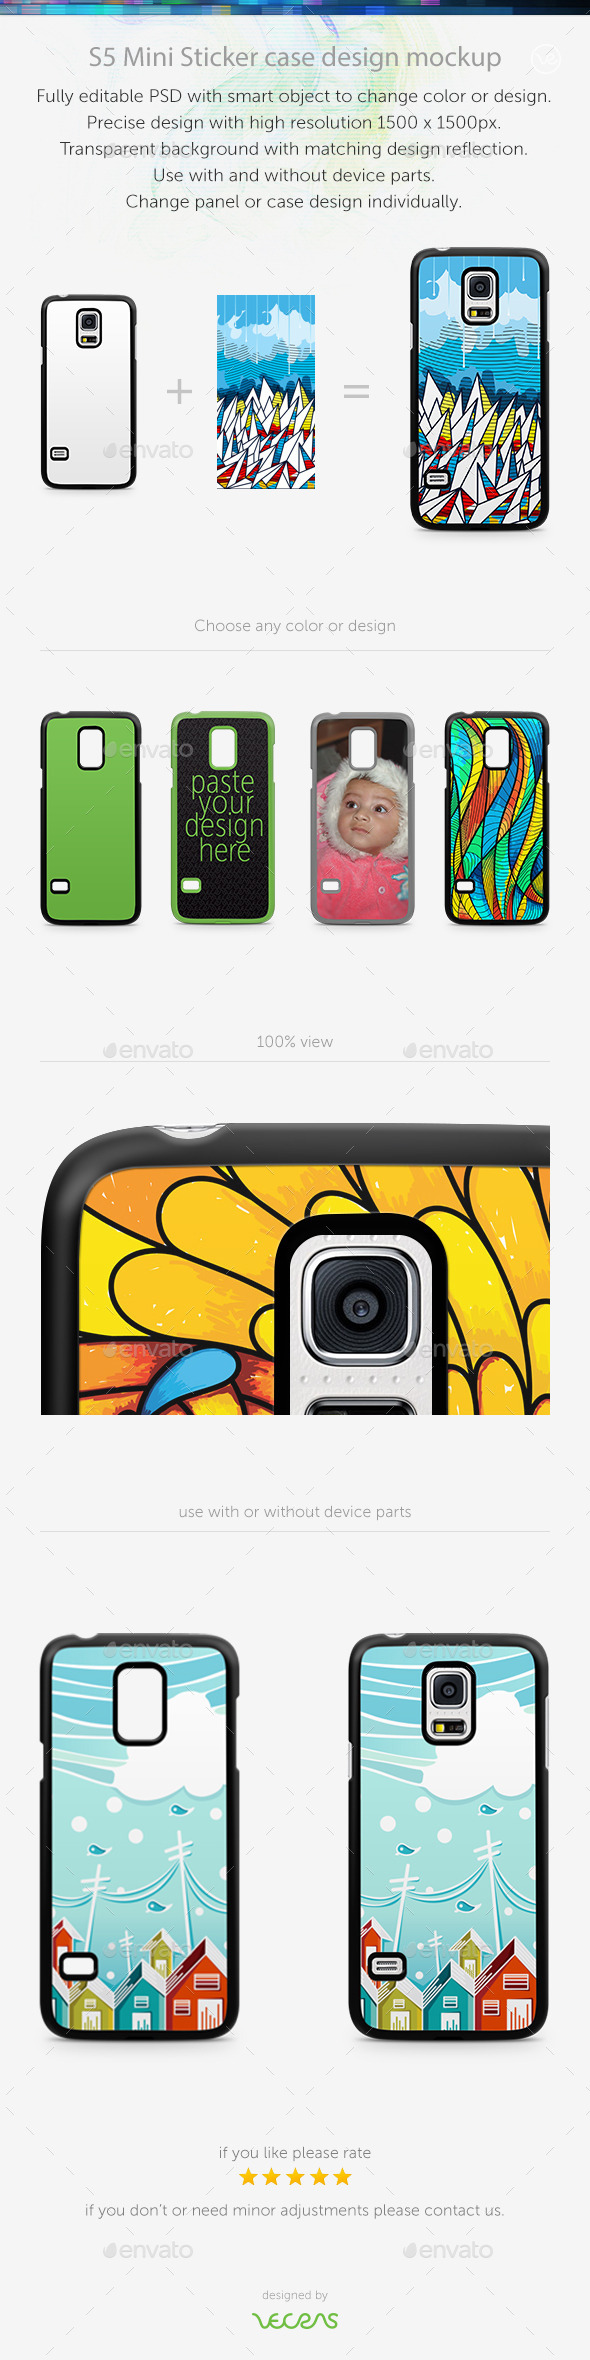 S5 Mini Sticker Case Design Mockup - Mobile Displays